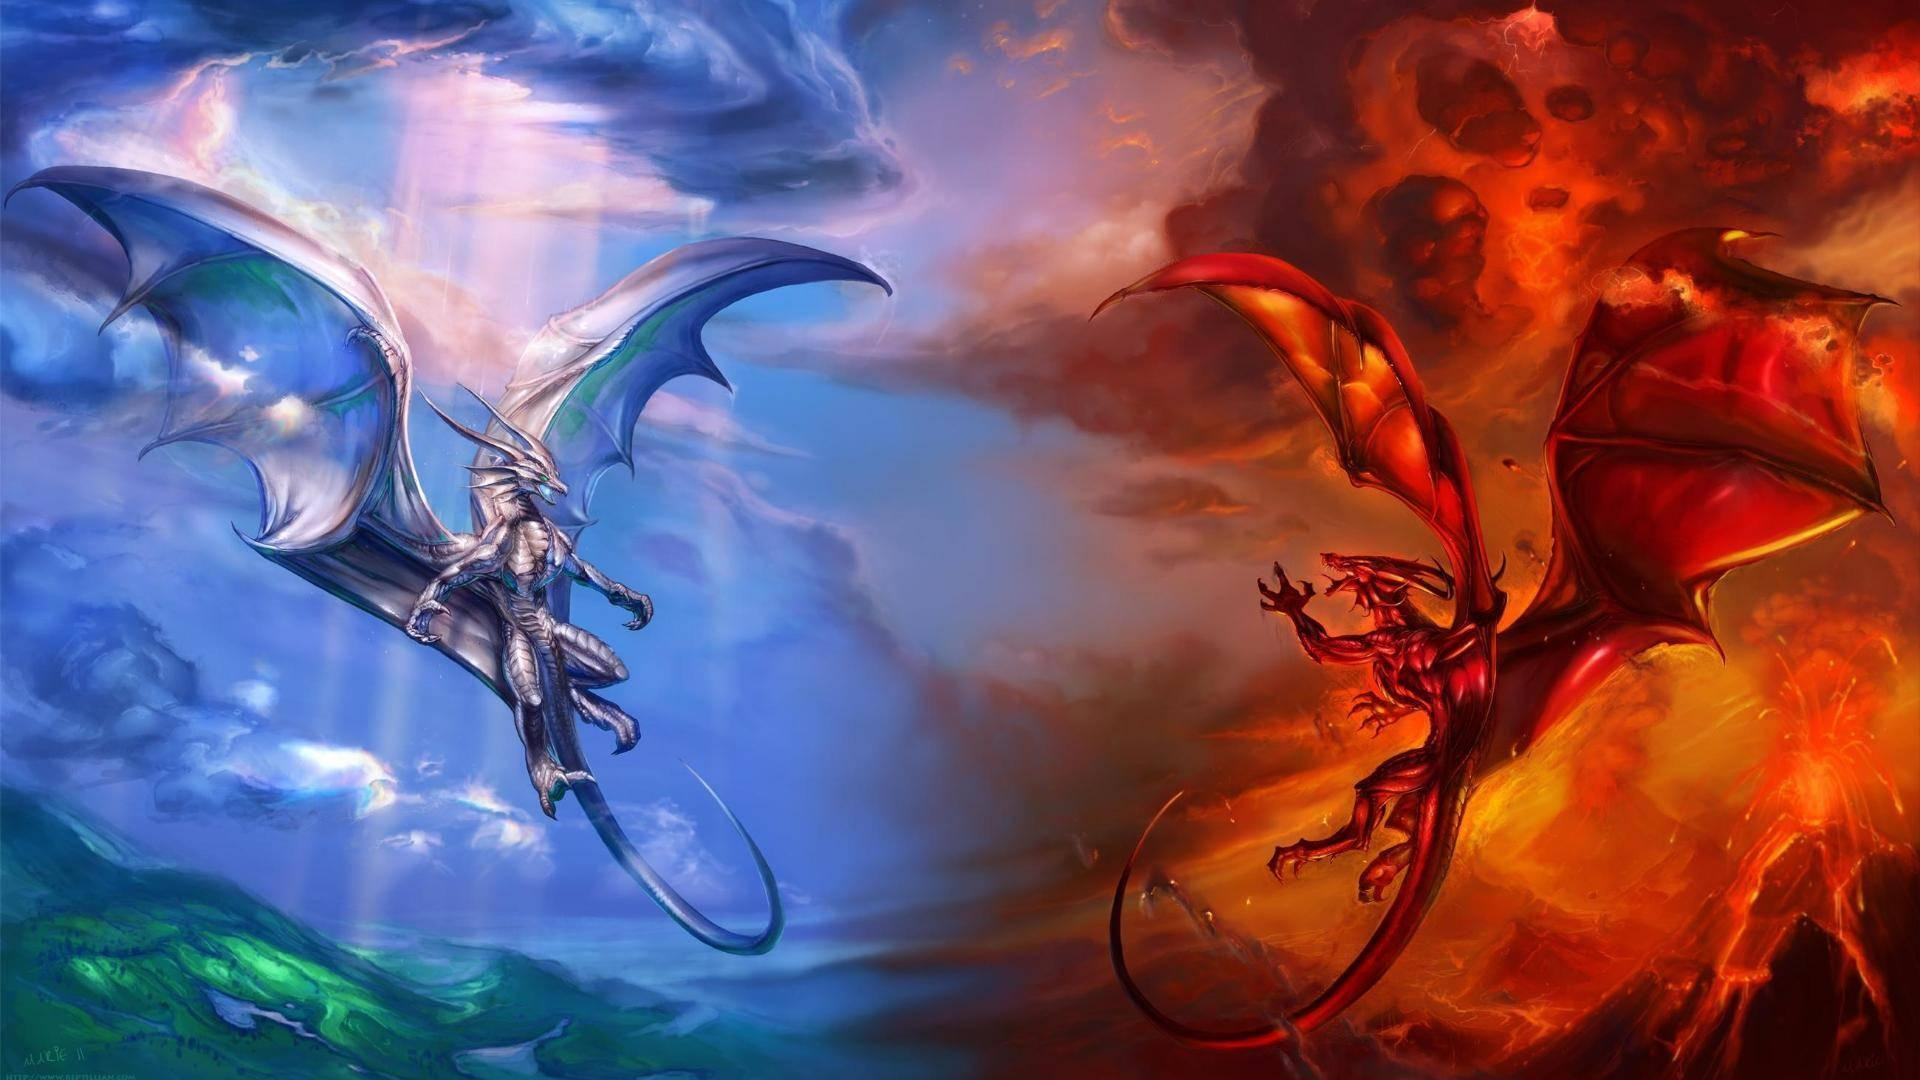 1920x1080 ice dragon vs fire dragon-World of fantasy art design HD wallpaper  Wallpapers View